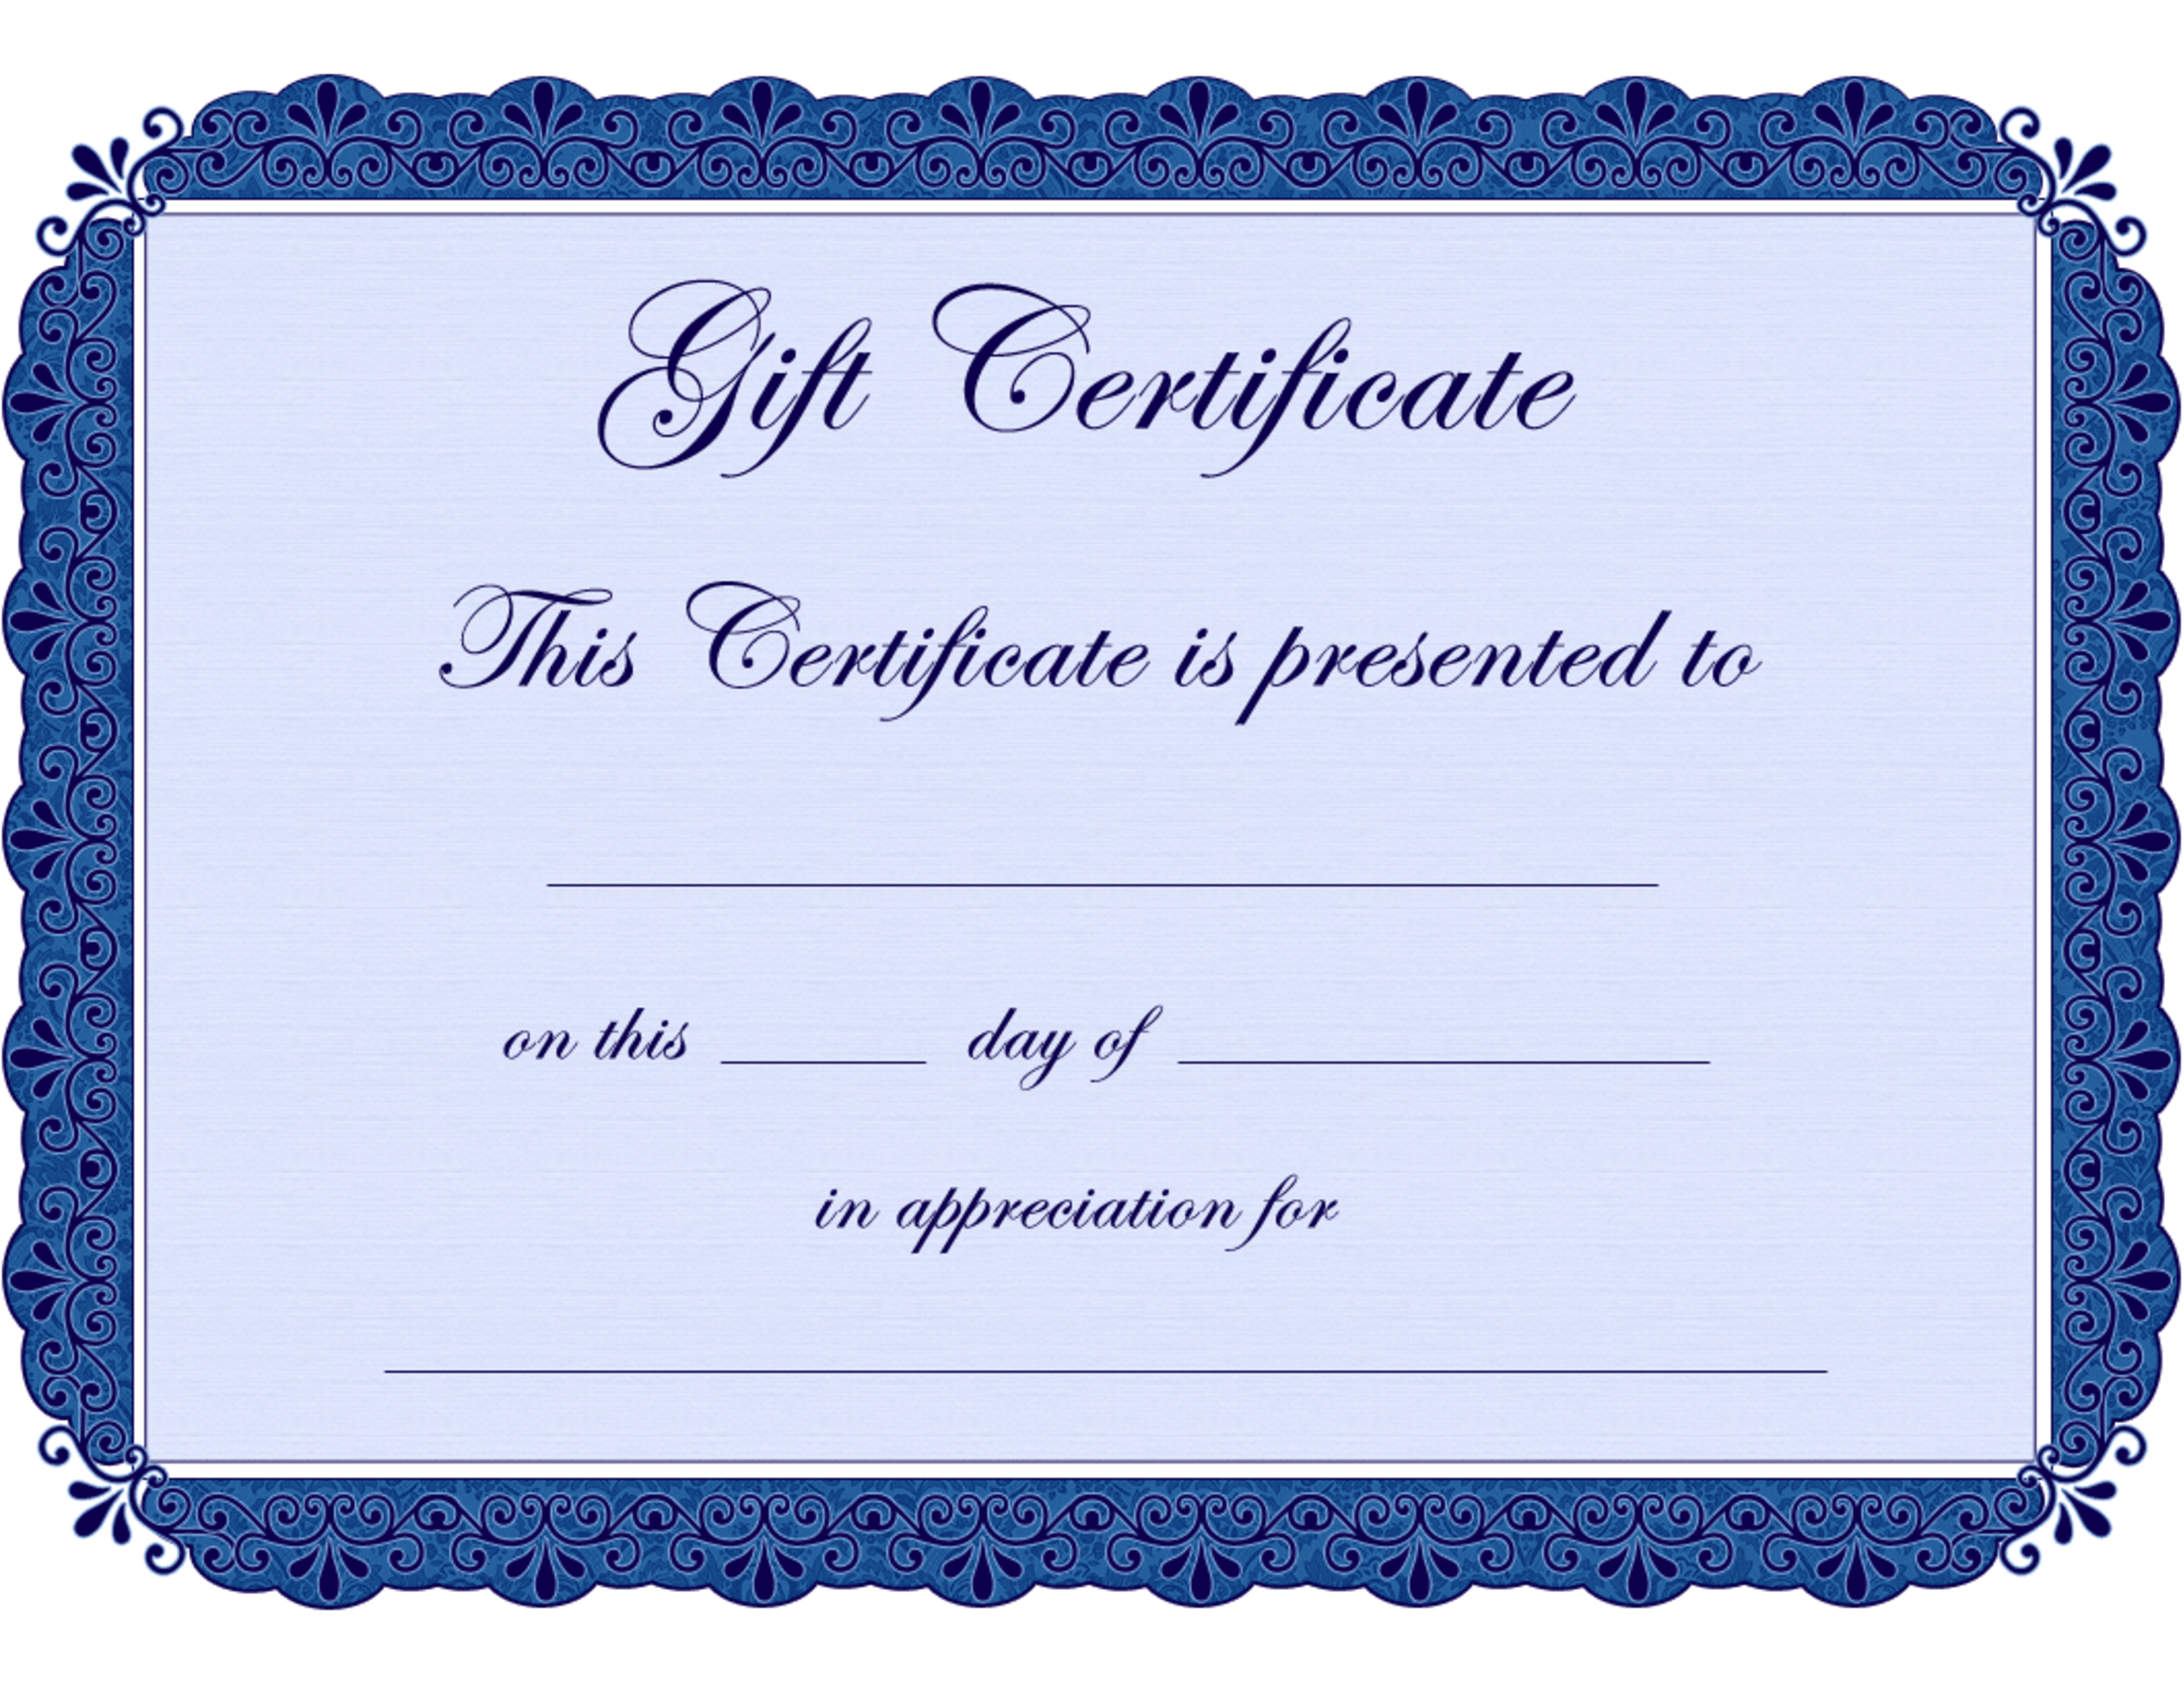 certificate templates to use resume builder certificate templates to use gift certificate templates to make your own certificates gift certificate templates gift